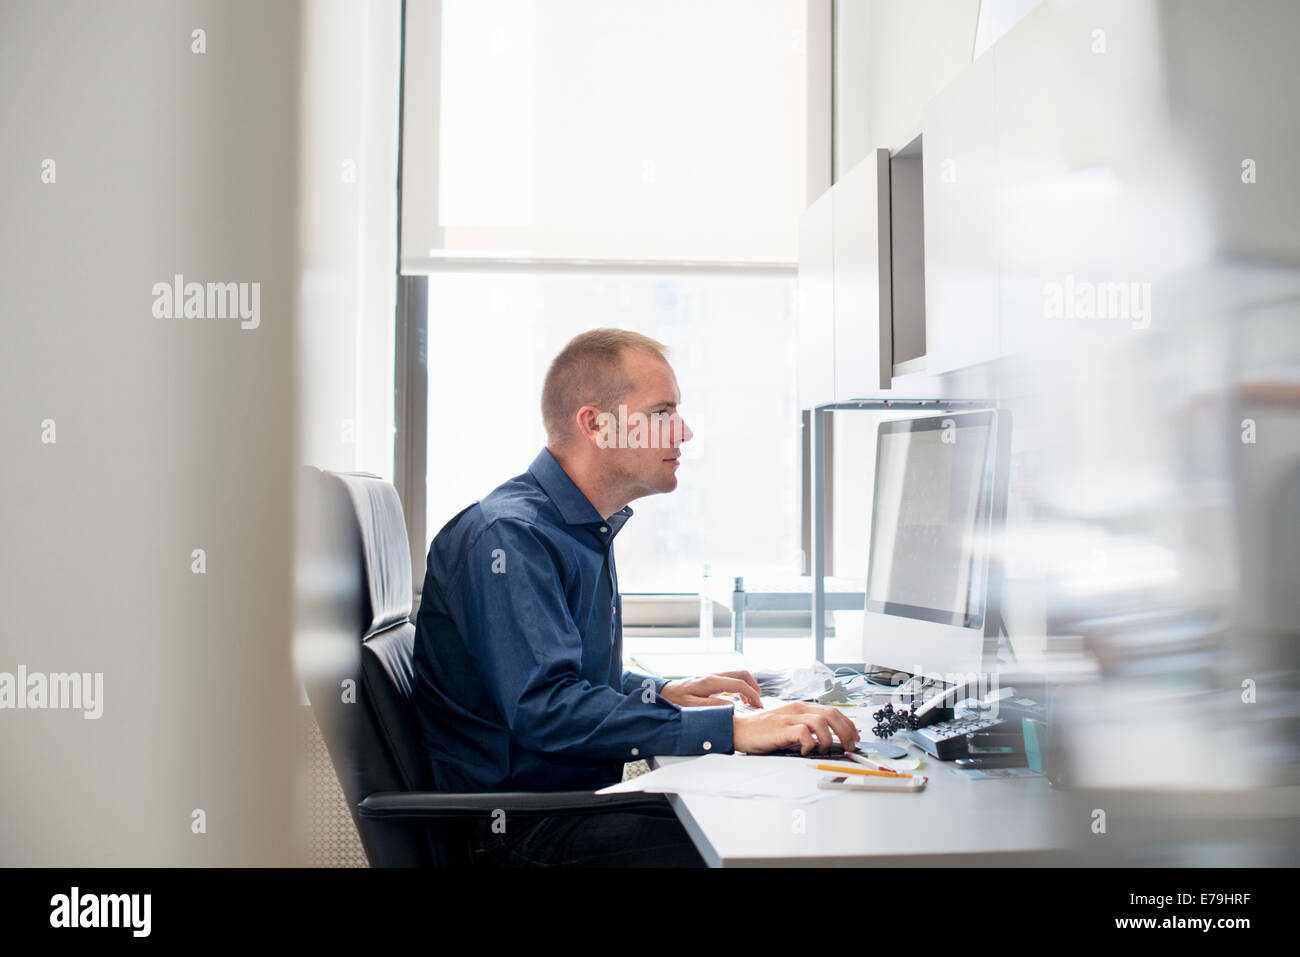 A man working in an office at a desk using a computer mouse. Focusing on a task. Stock Photo